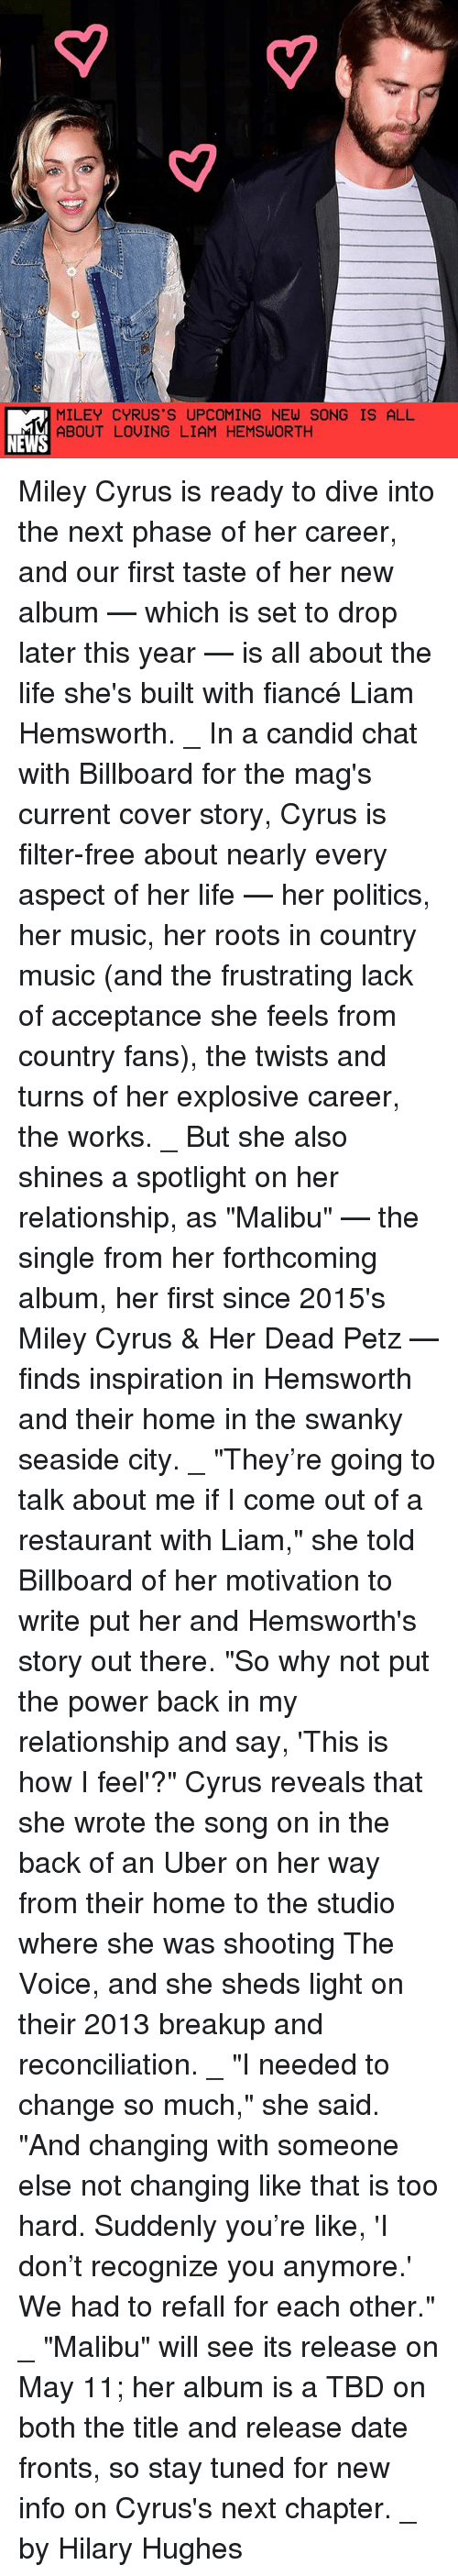 """malibu: MILEY CYRUS S UPCOMING NEW SONG IS ALL  ABOUT LOVING LIAM HEMSWORTH  NEWS Miley Cyrus is ready to dive into the next phase of her career, and our first taste of her new album — which is set to drop later this year — is all about the life she's built with fiancé Liam Hemsworth. _ In a candid chat with Billboard for the mag's current cover story, Cyrus is filter-free about nearly every aspect of her life — her politics, her music, her roots in country music (and the frustrating lack of acceptance she feels from country fans), the twists and turns of her explosive career, the works. _ But she also shines a spotlight on her relationship, as """"Malibu"""" — the single from her forthcoming album, her first since 2015's Miley Cyrus & Her Dead Petz — finds inspiration in Hemsworth and their home in the swanky seaside city. _ """"They're going to talk about me if I come out of a restaurant with Liam,"""" she told Billboard of her motivation to write put her and Hemsworth's story out there. """"So why not put the power back in my relationship and say, 'This is how I feel'?"""" Cyrus reveals that she wrote the song on in the back of an Uber on her way from their home to the studio where she was shooting The Voice, and she sheds light on their 2013 breakup and reconciliation. _ """"I needed to change so much,"""" she said. """"And changing with someone else not changing like that is too hard. Suddenly you're like, 'I don't recognize you anymore.' We had to refall for each other."""" _ """"Malibu"""" will see its release on May 11; her album is a TBD on both the title and release date fronts, so stay tuned for new info on Cyrus's next chapter. _ by Hilary Hughes"""